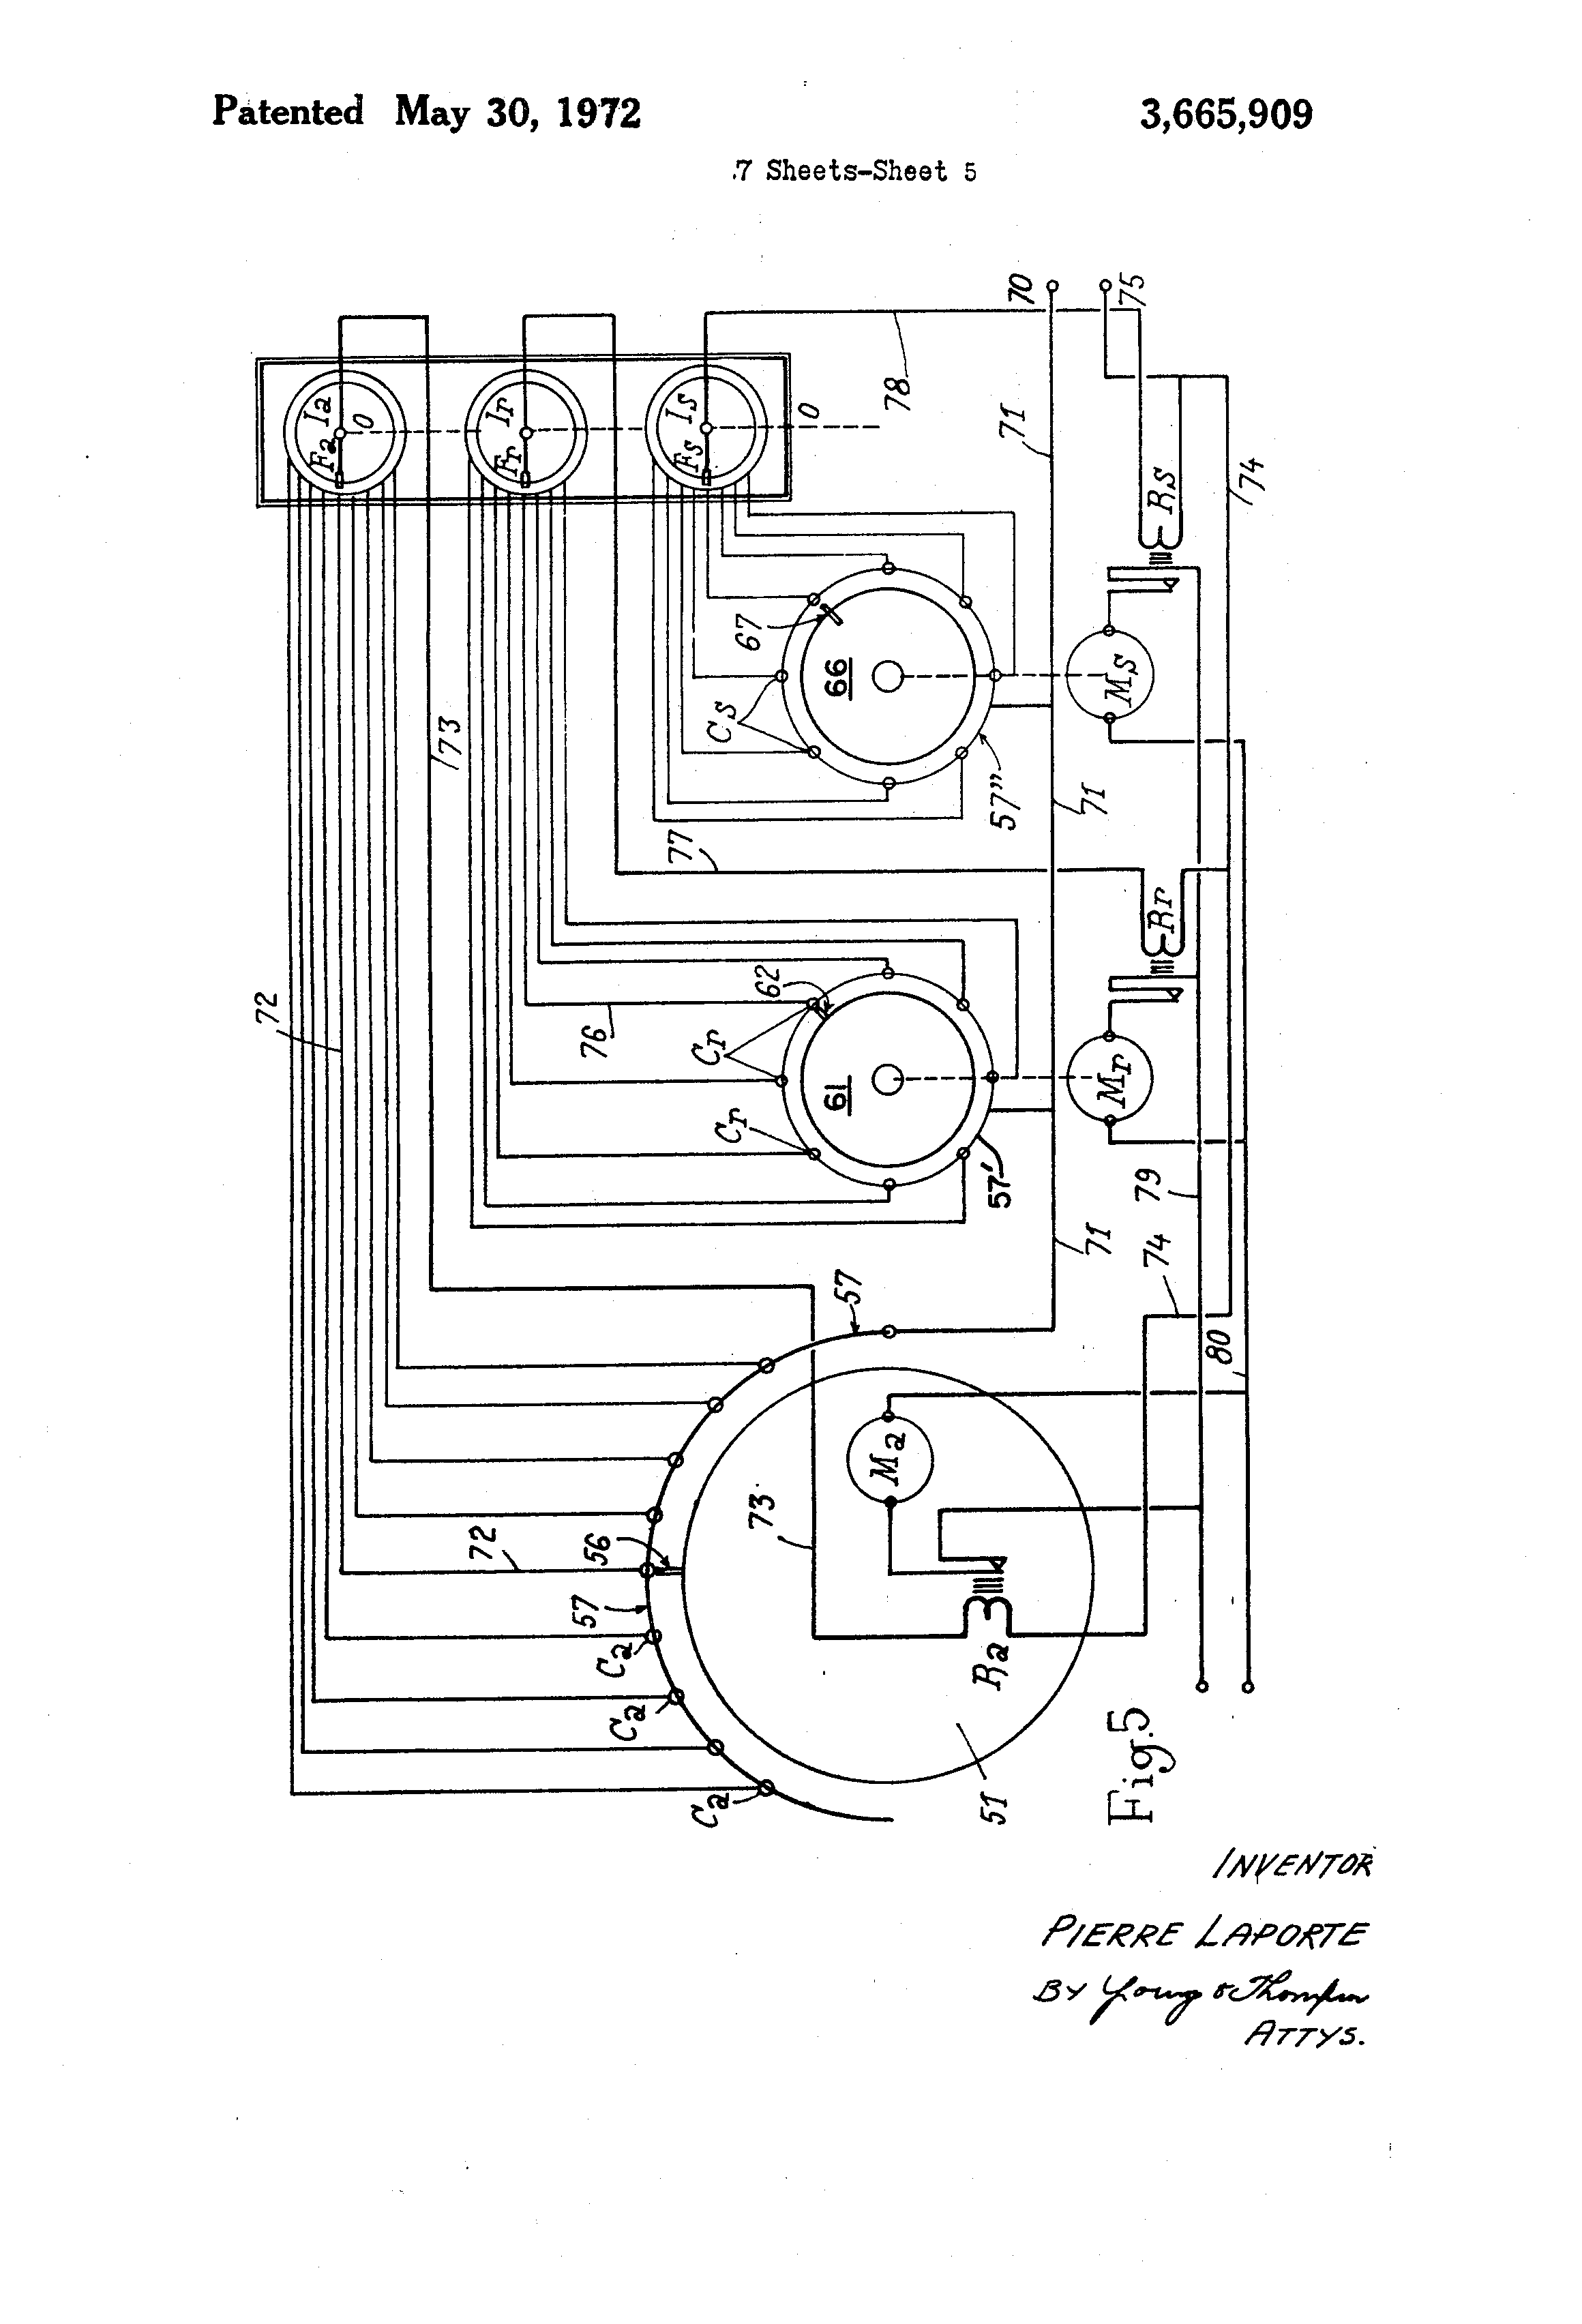 US3665909 5 patent us3665909 apparatus controlling the mechanism throwing laporte traps wiring diagram at virtualis.co